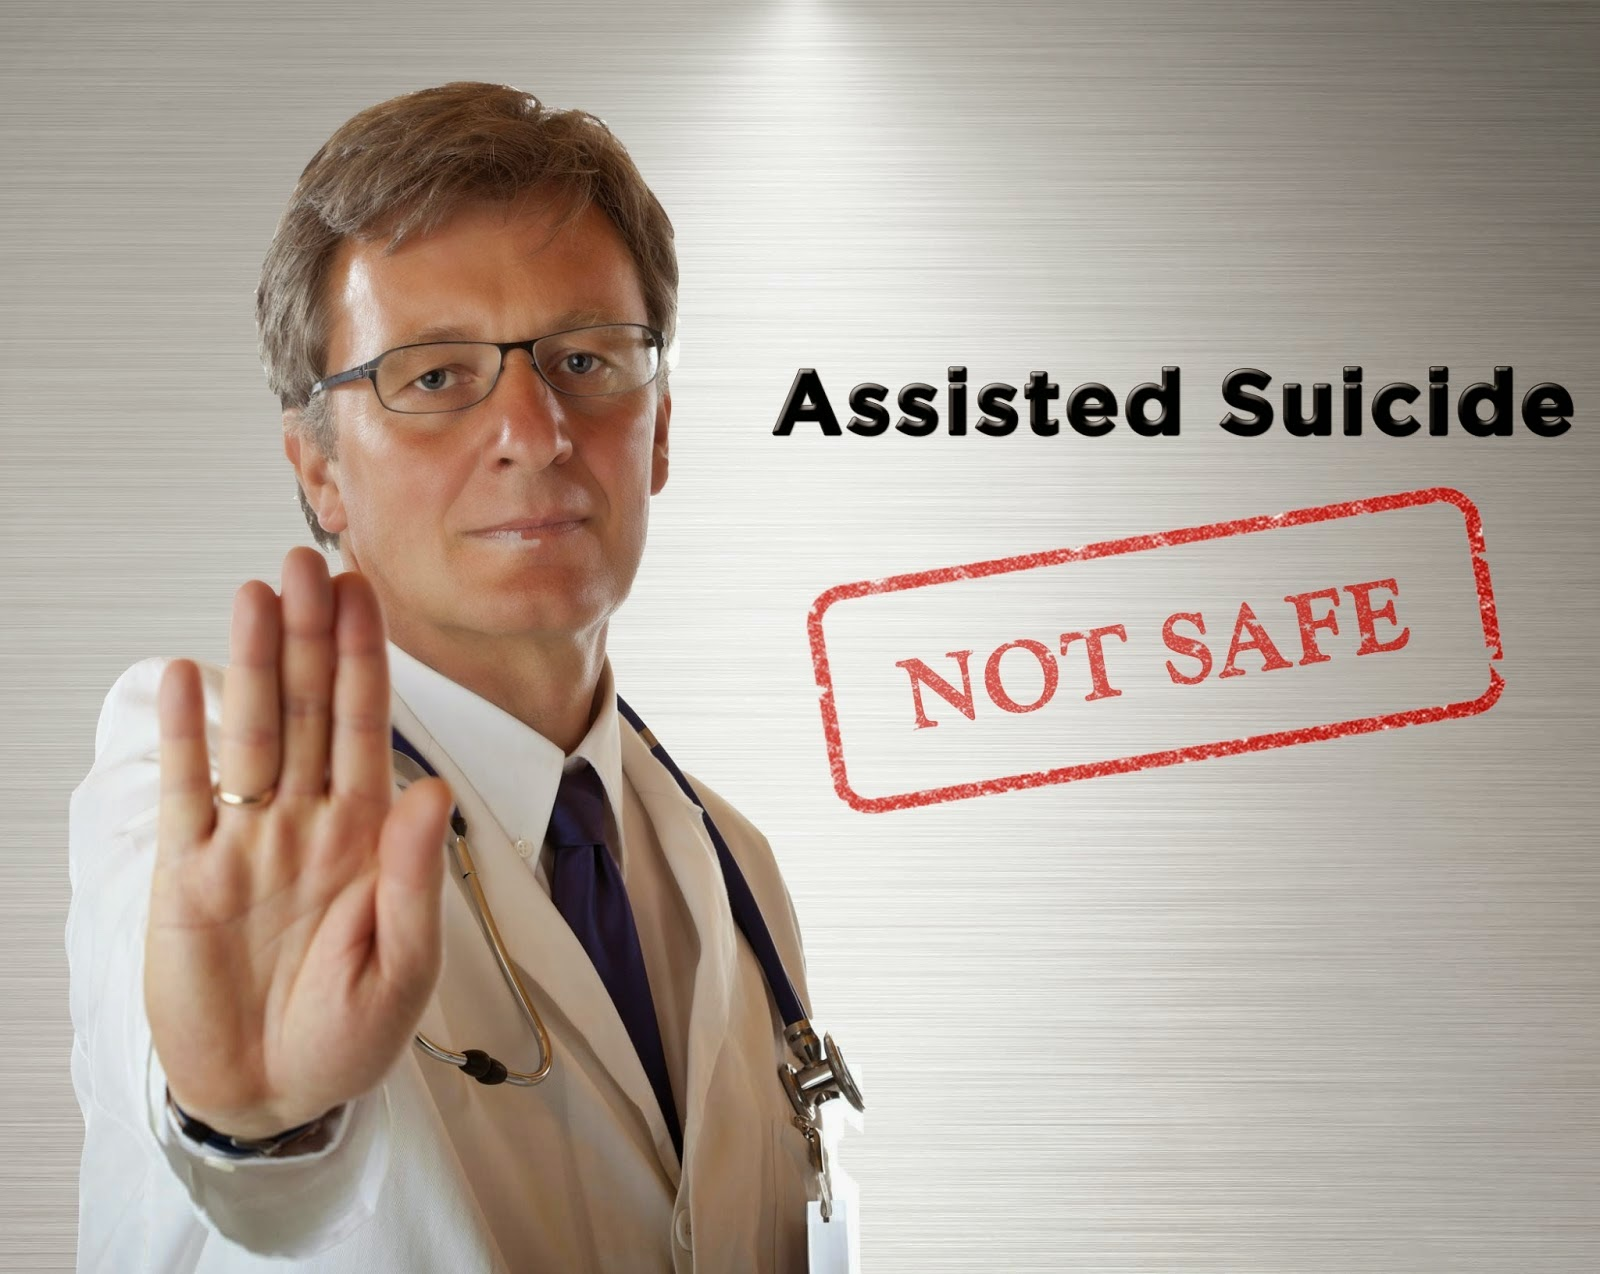 an argument in favor of euthanasia physician assisted suicide Assisted suicide, euthanasia or better end-of the argument in favor of physician-assisted suicide: physician-assisted suicide or euthanasia.